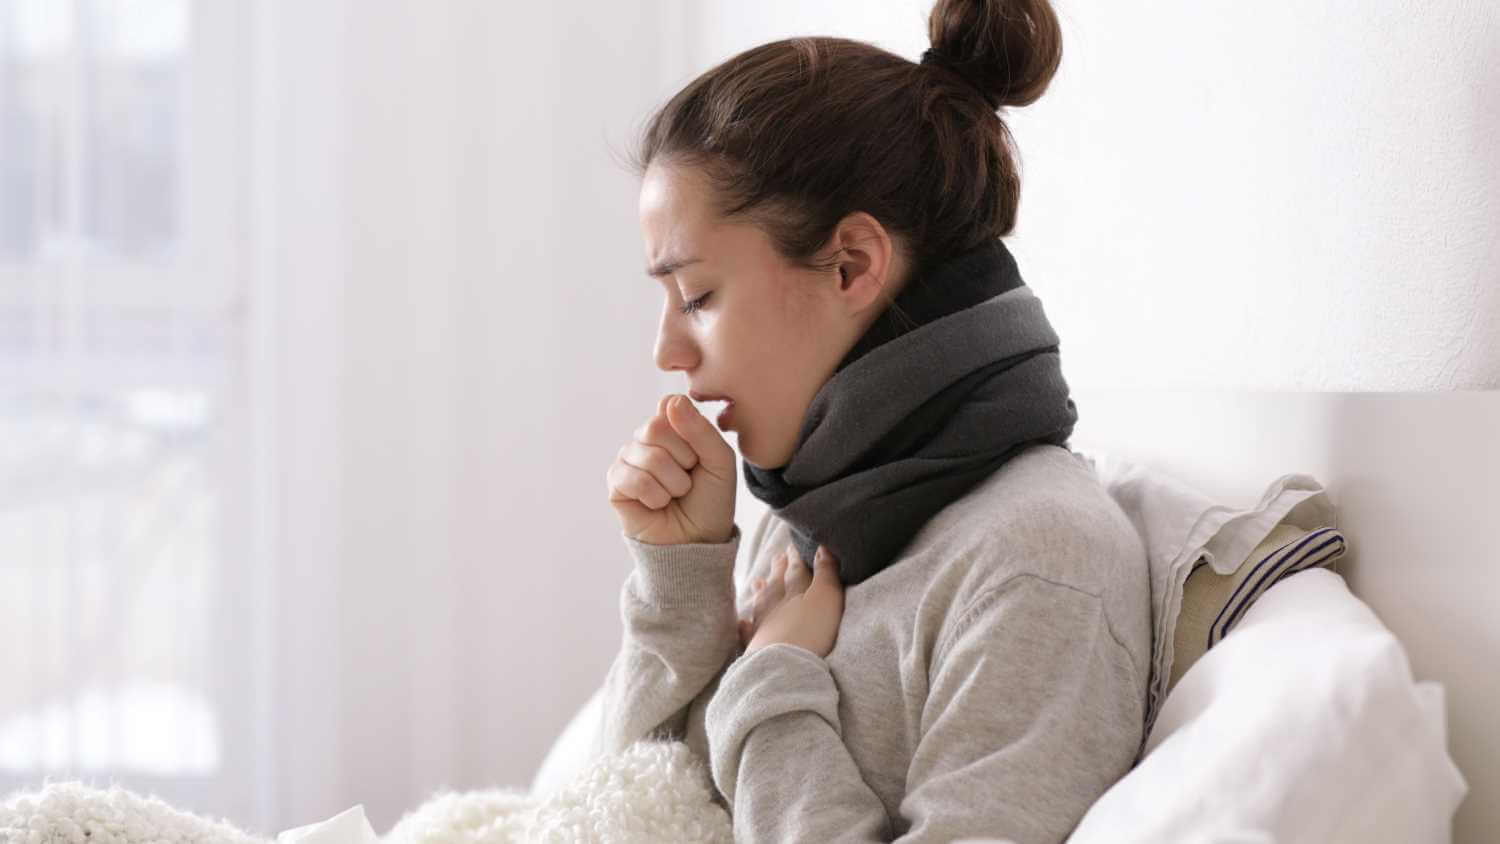 A women coughing while sitting up in bed.